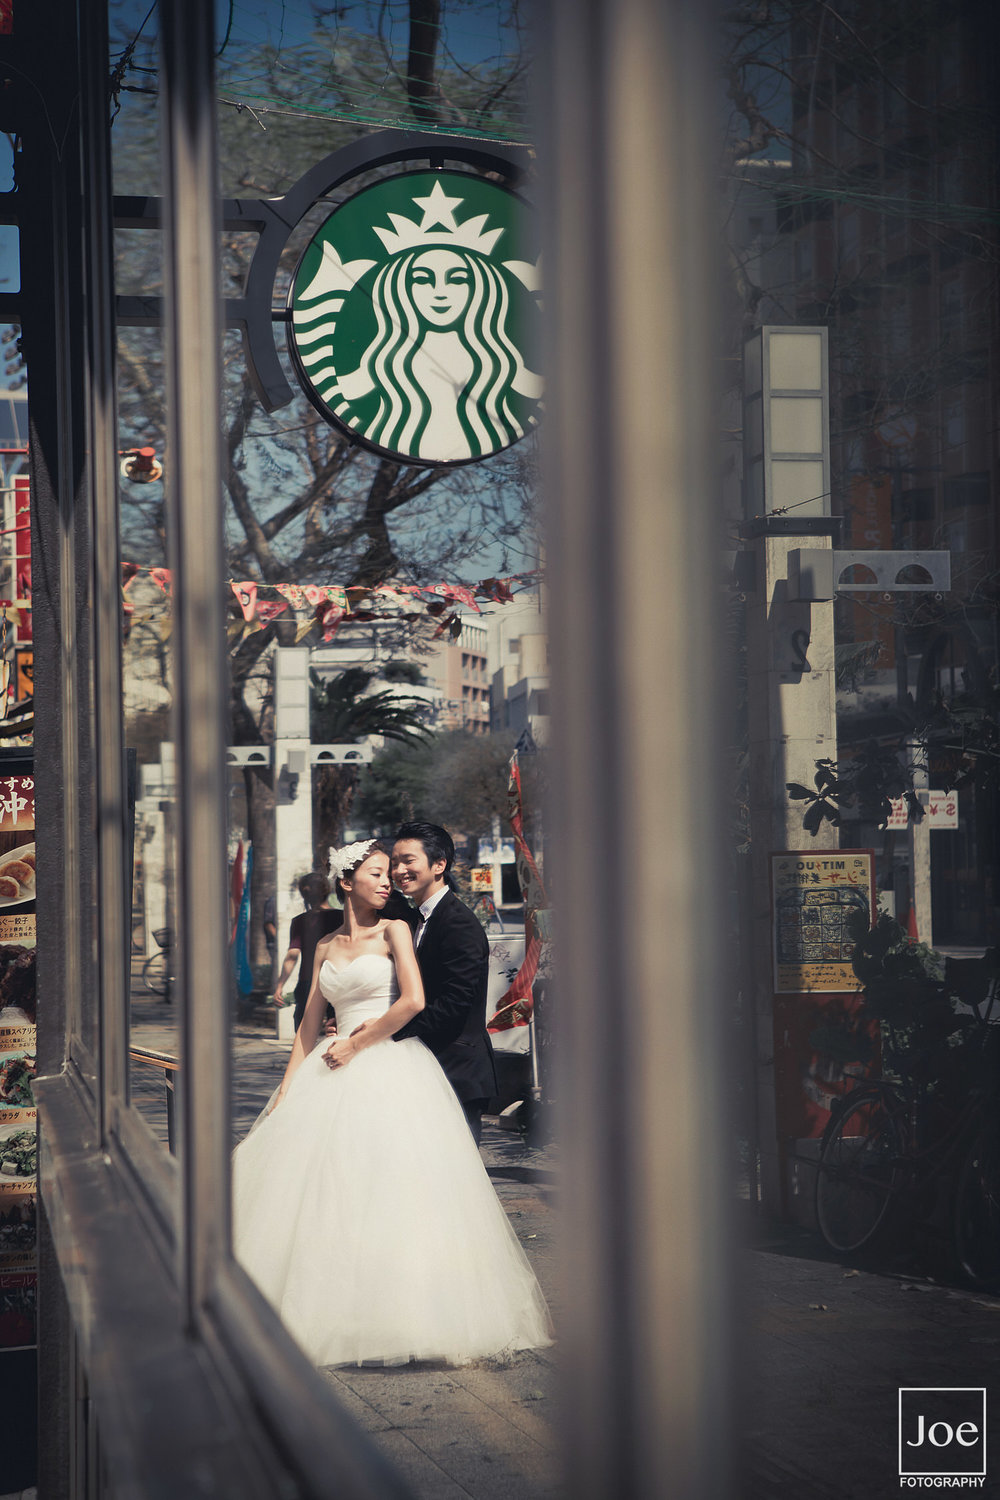 10-okinawa-kokusai-dori-starbucks-pre-wedding-melody-amigo-joe-fotography.jpg